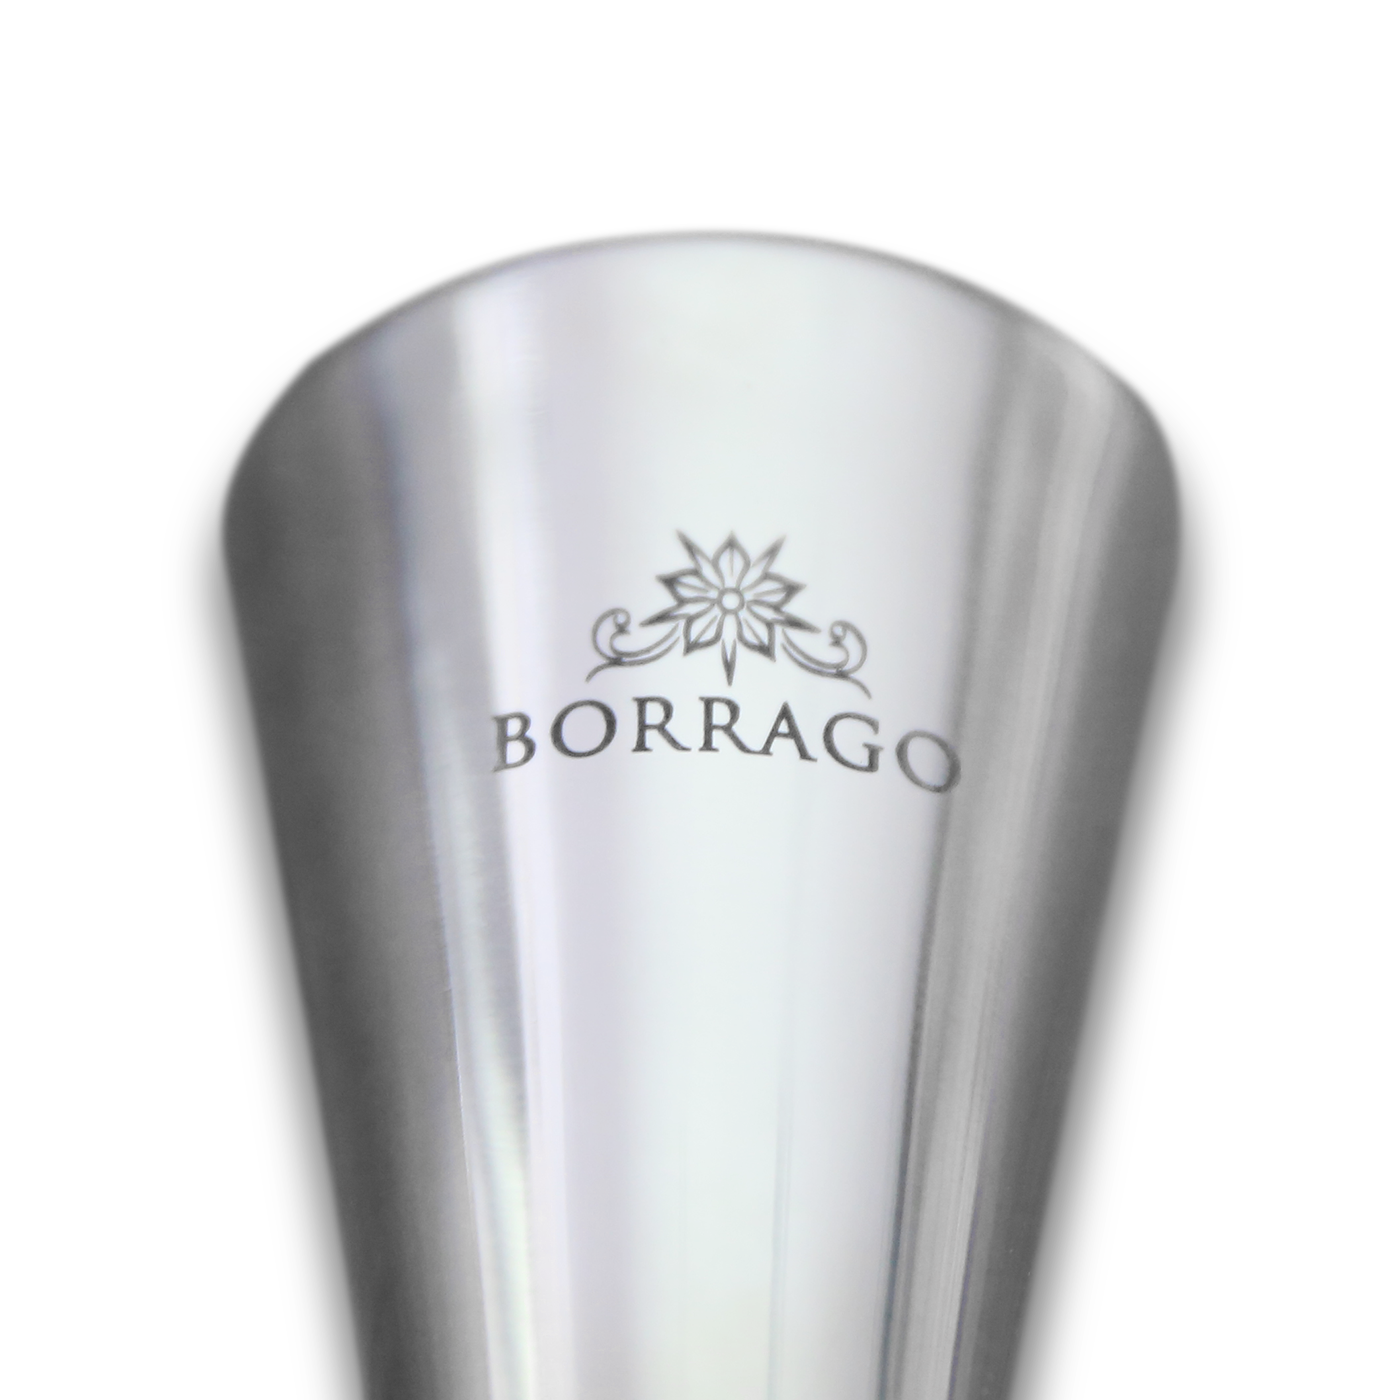 Borrago Beautiful Jigger Spirit Measure